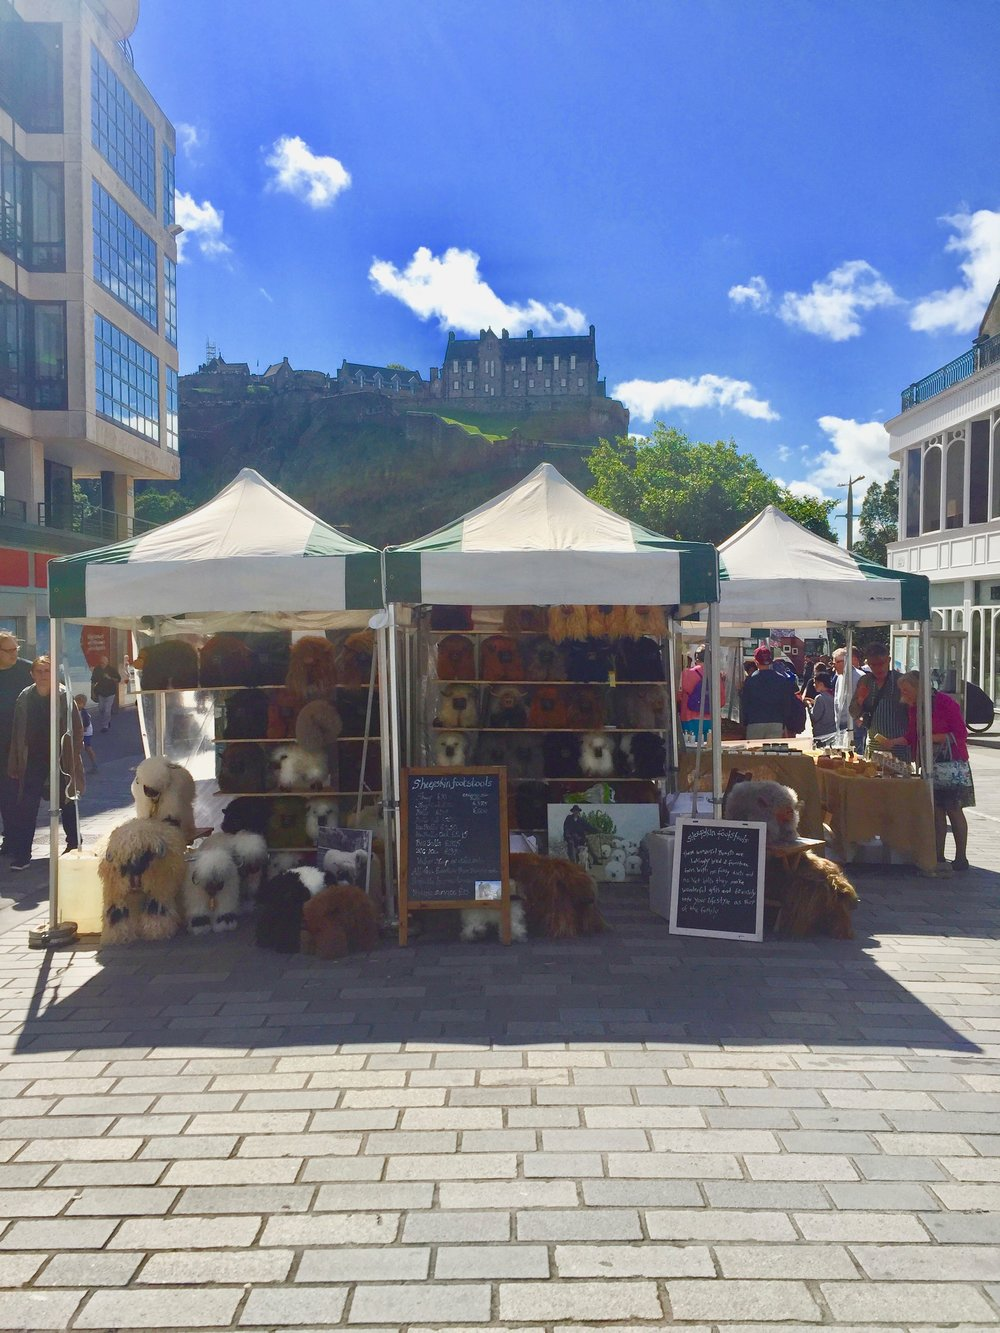 My stand infront of Edinburgh castle